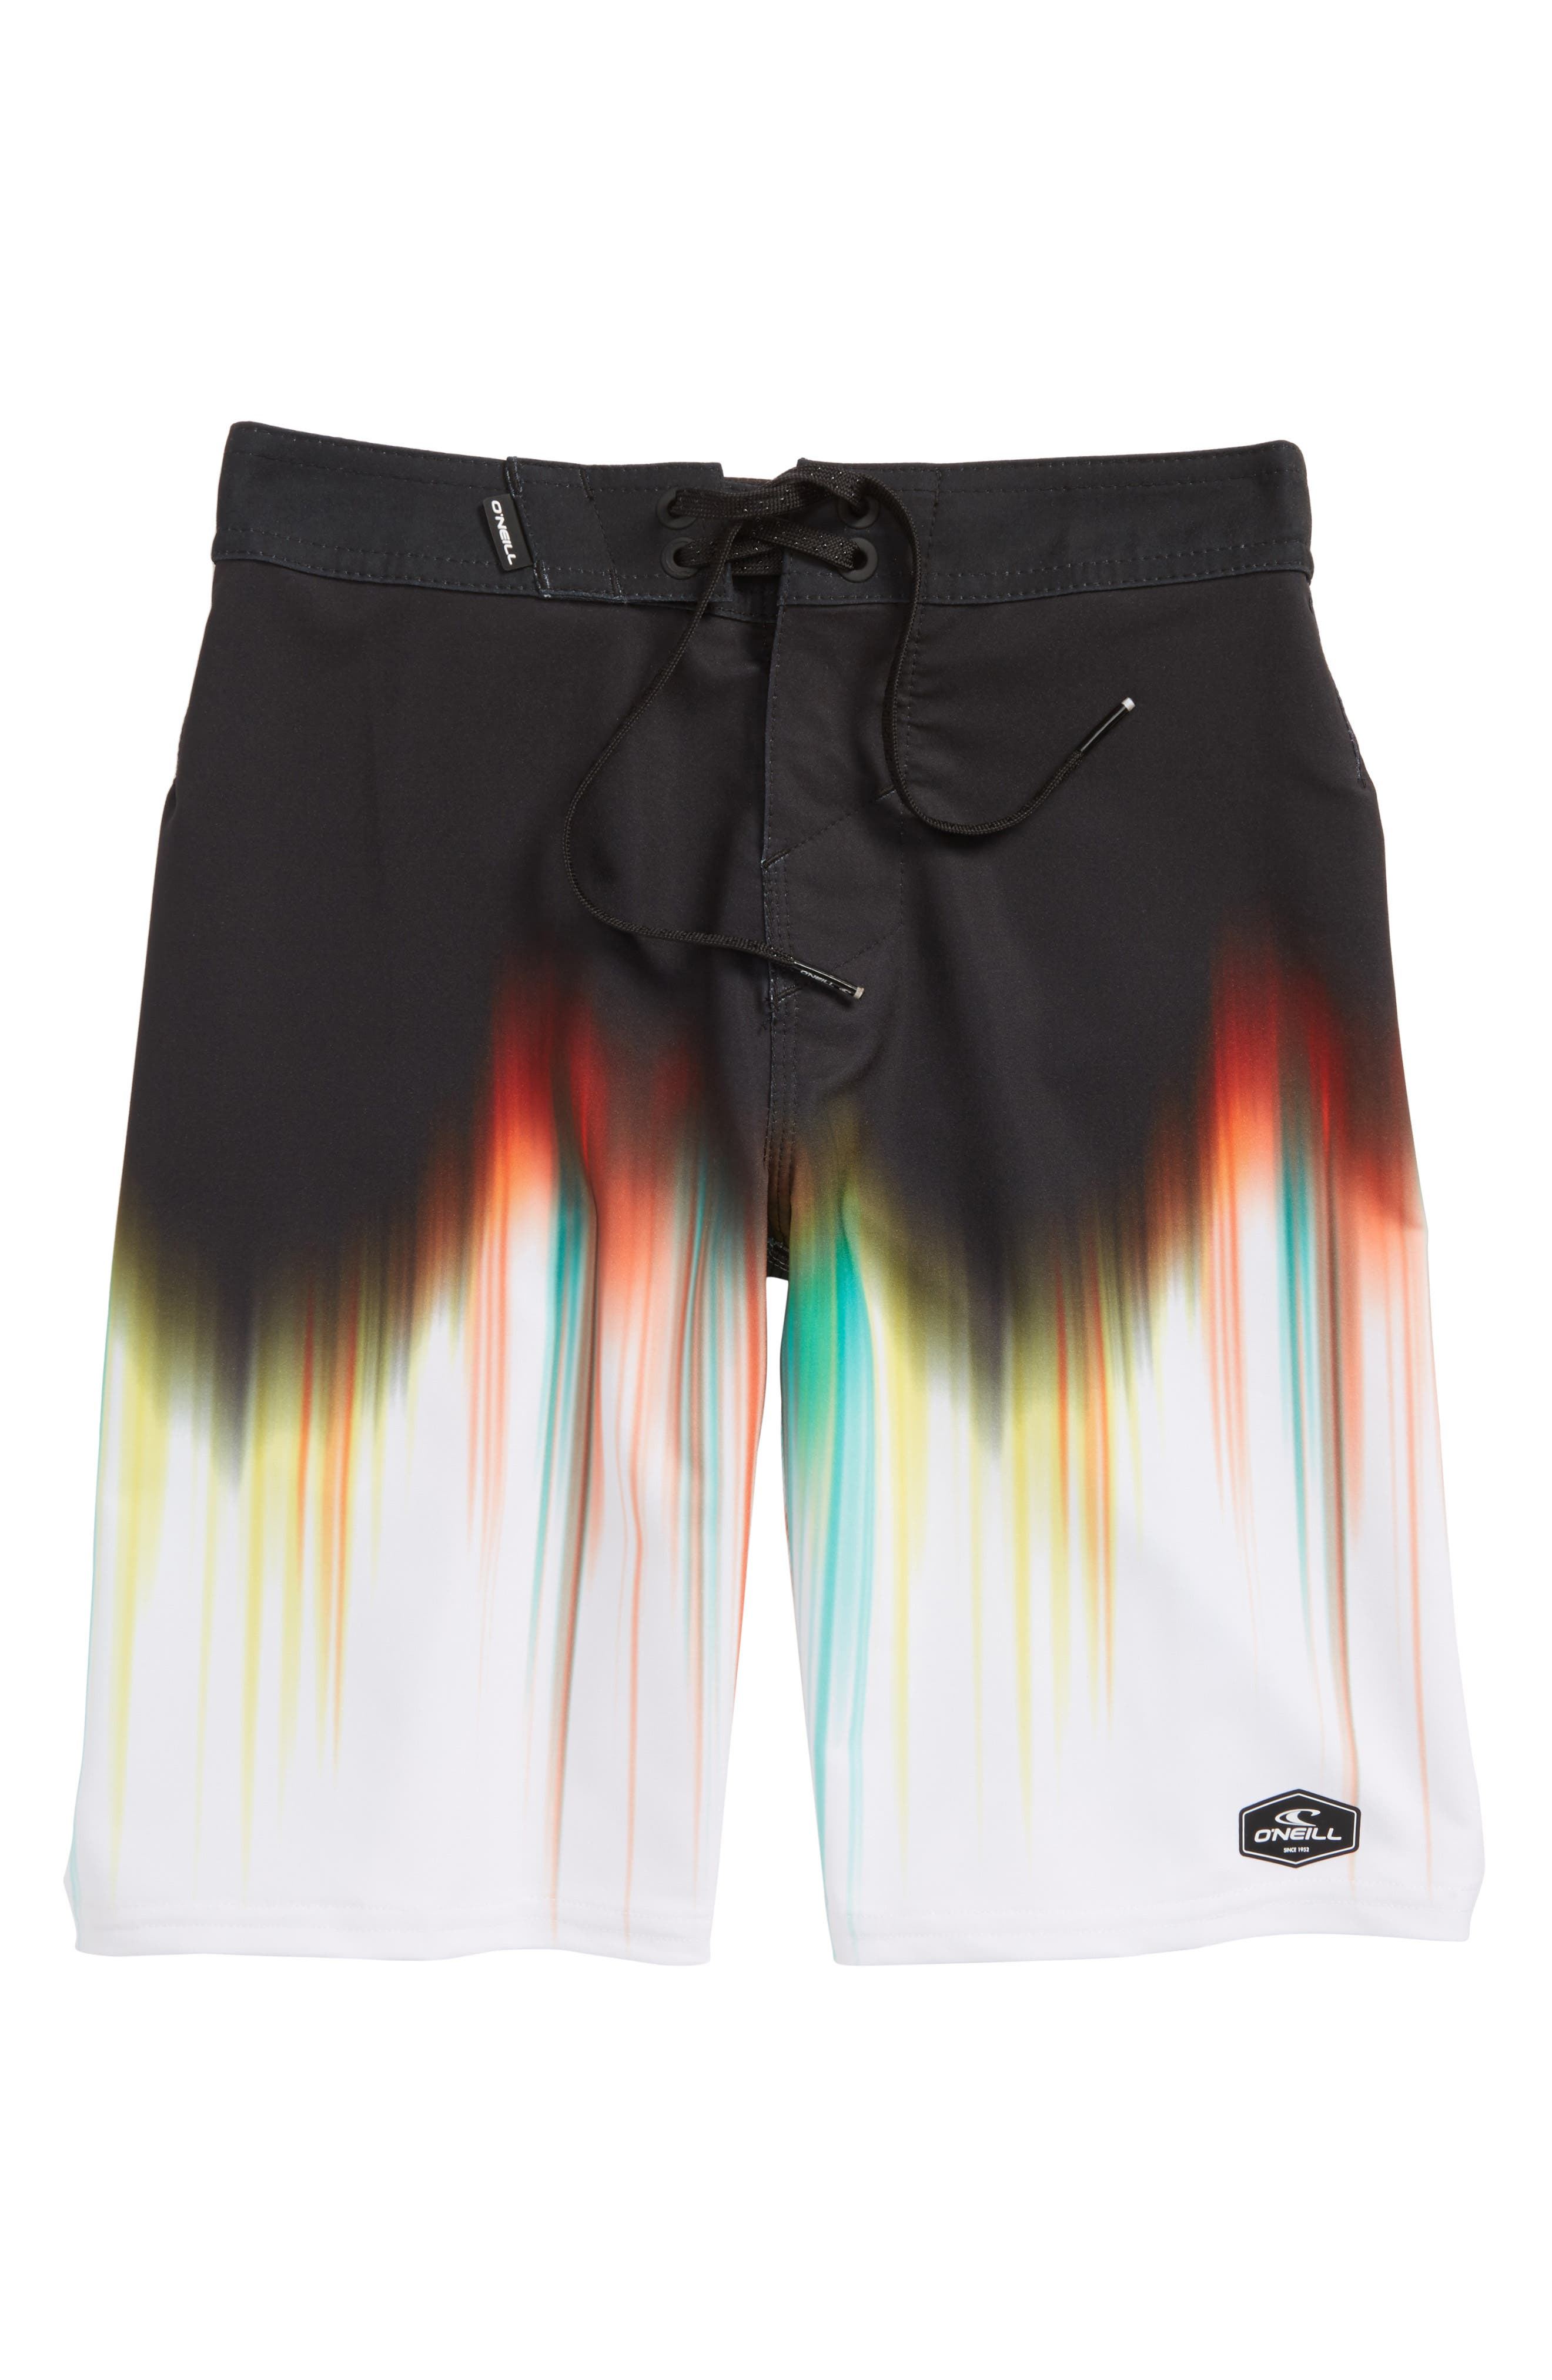 Hyperfreak Drippin Board Shorts,                         Main,                         color, Black